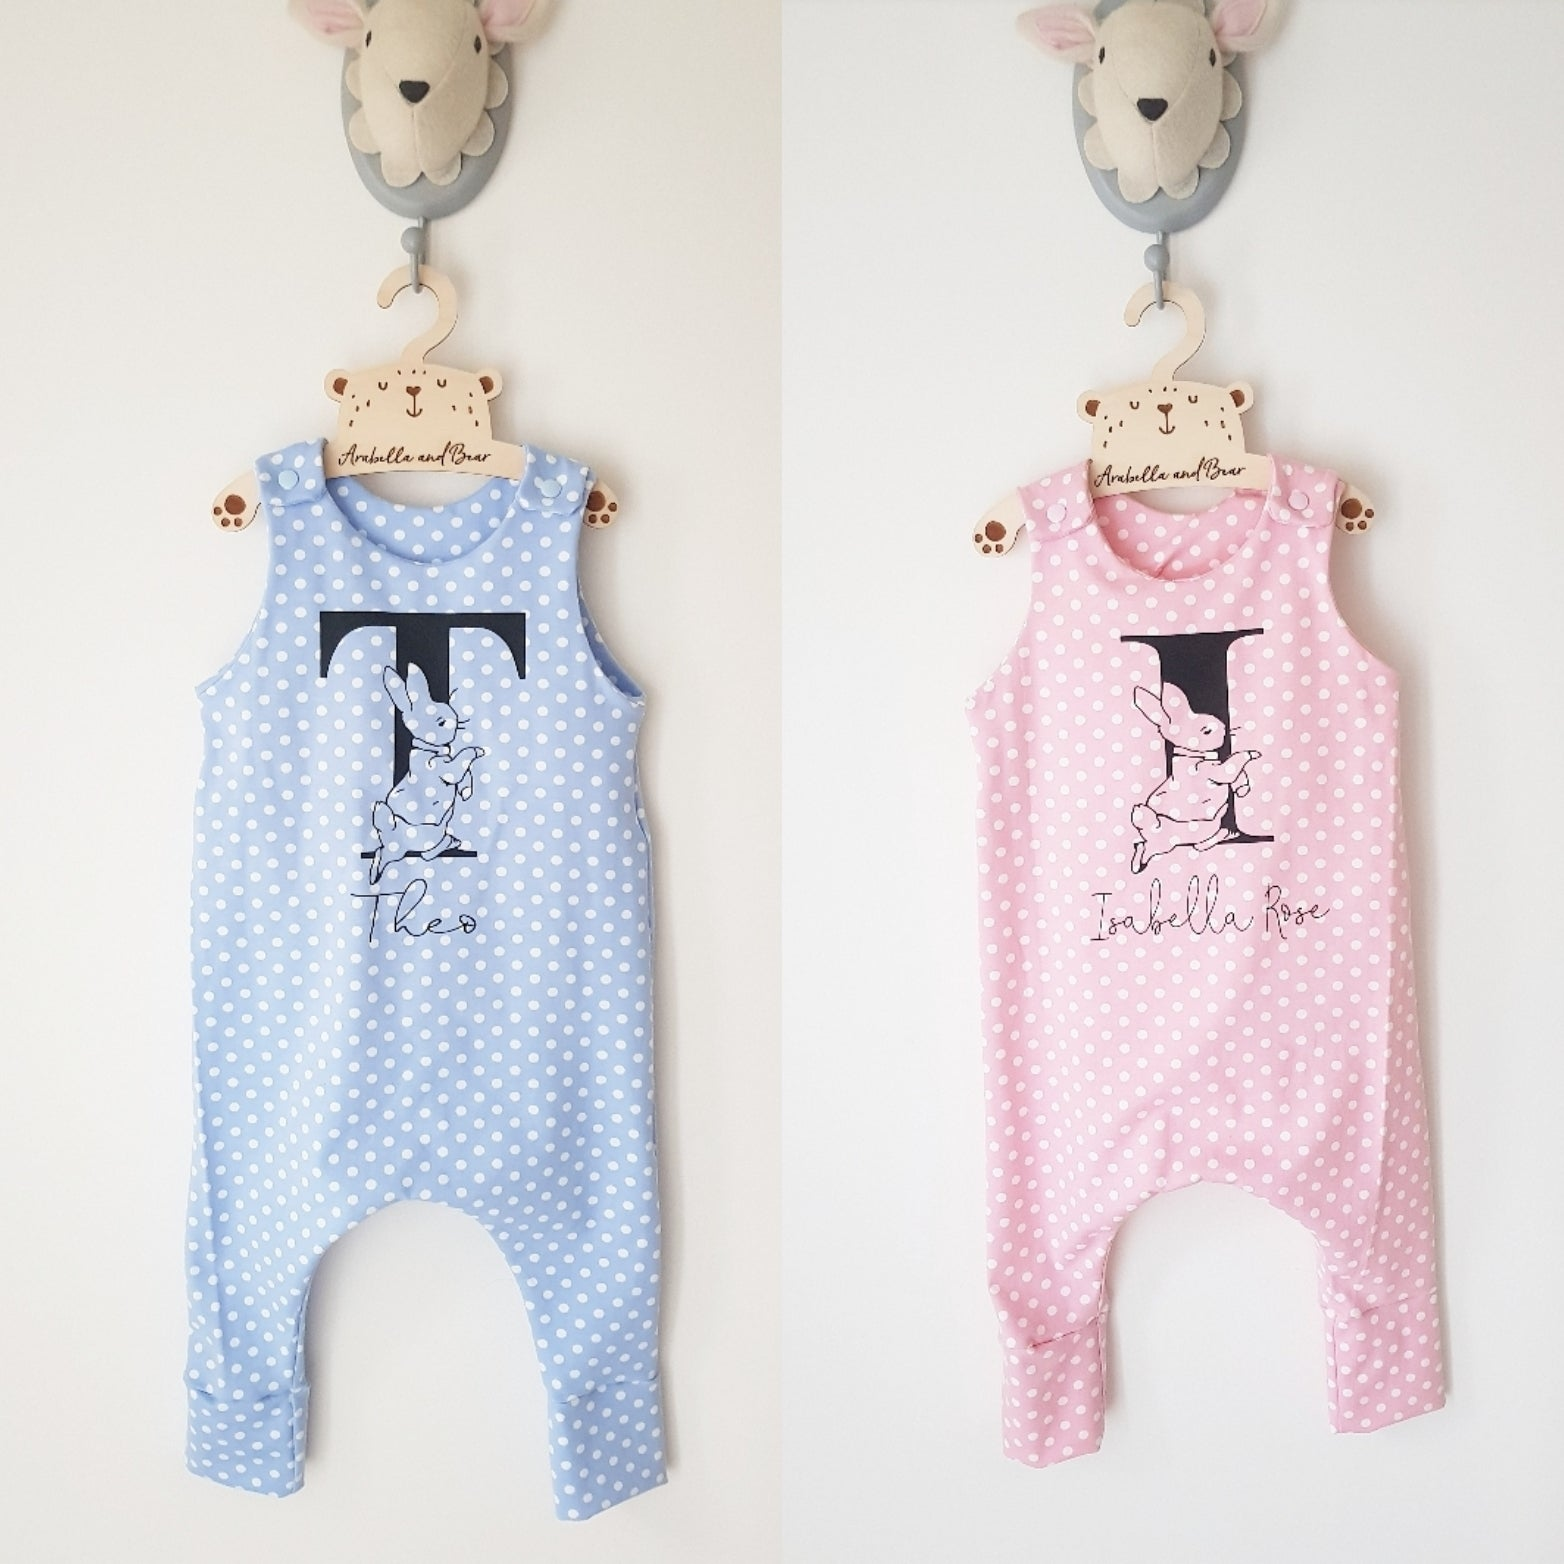 baby girls pink handmade peter rabbit romper outfit 6-9 months